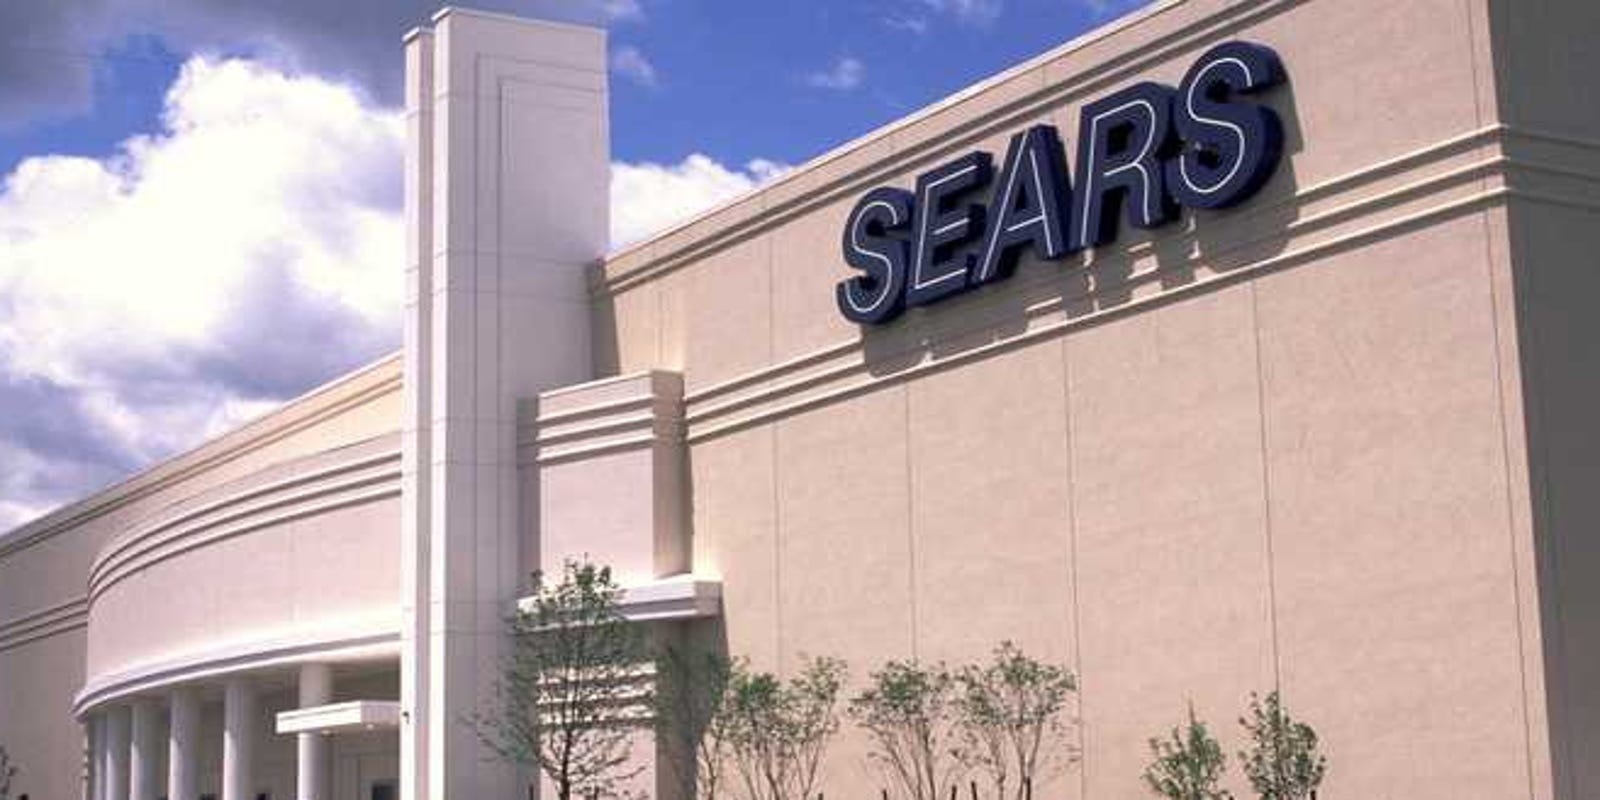 Is your local Kmart or Sears closing?